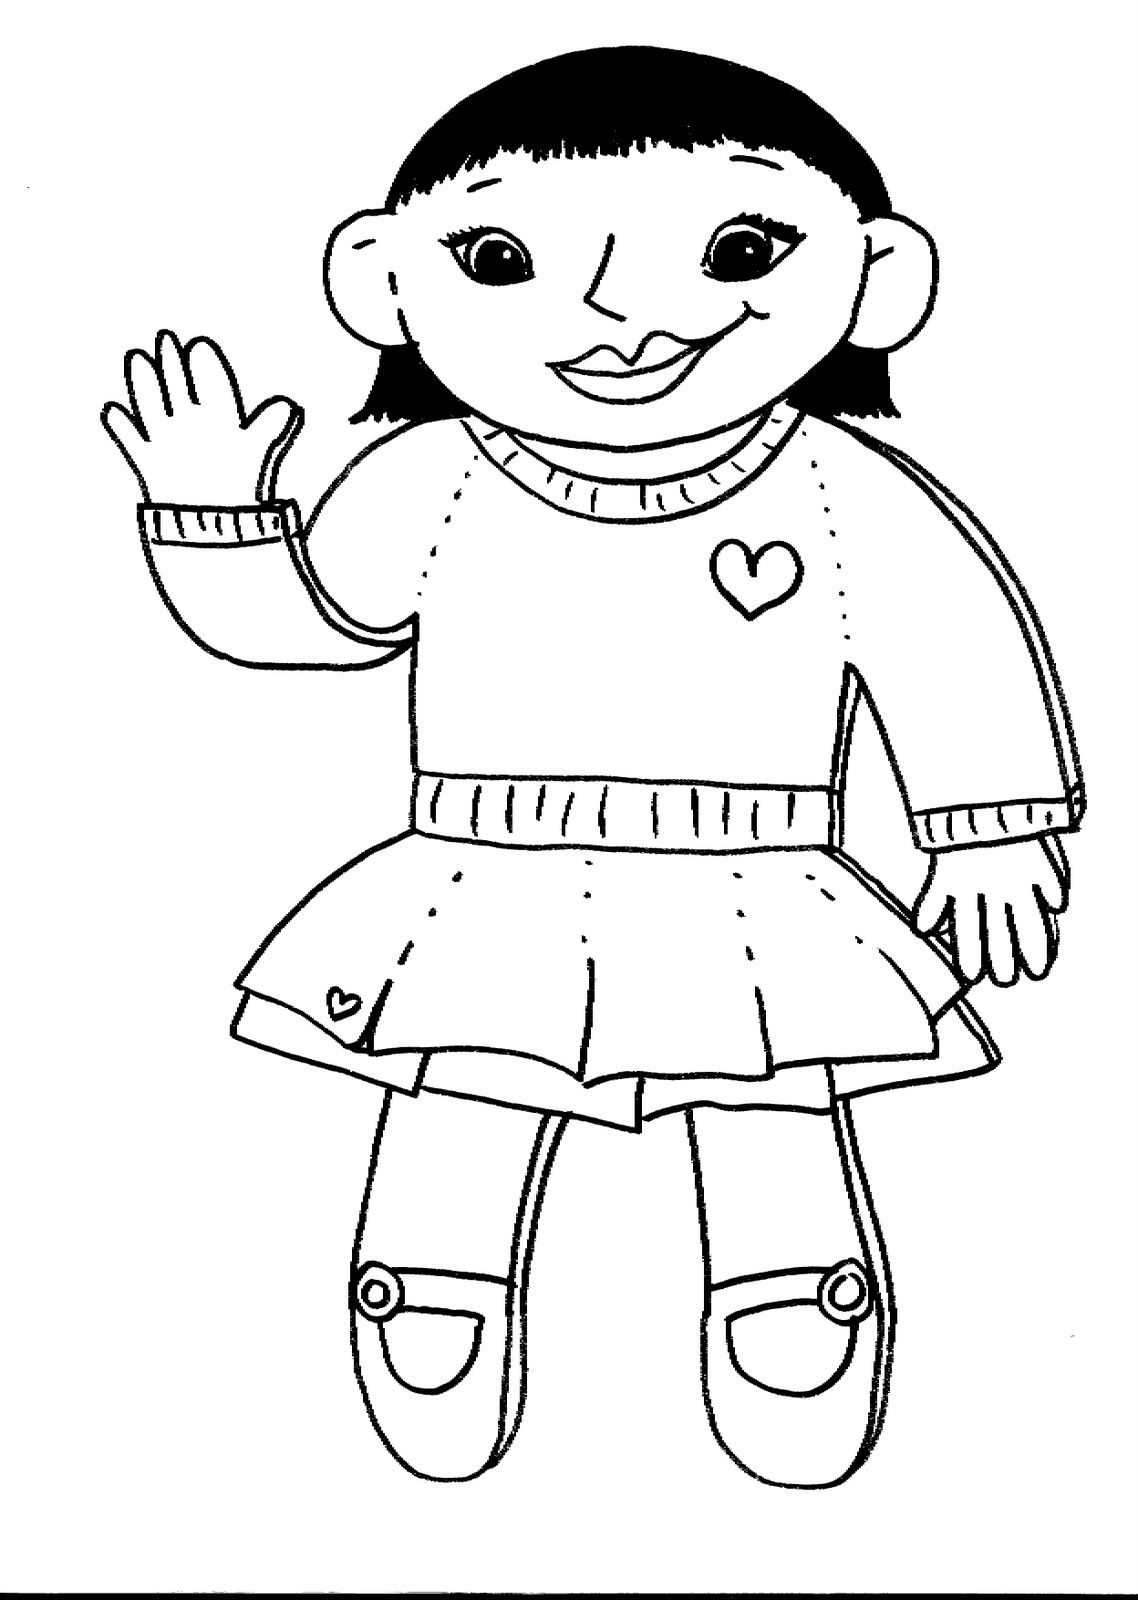 Flat Stanley Coloring Page Pdf flat stanley Pinterest Flat stanley